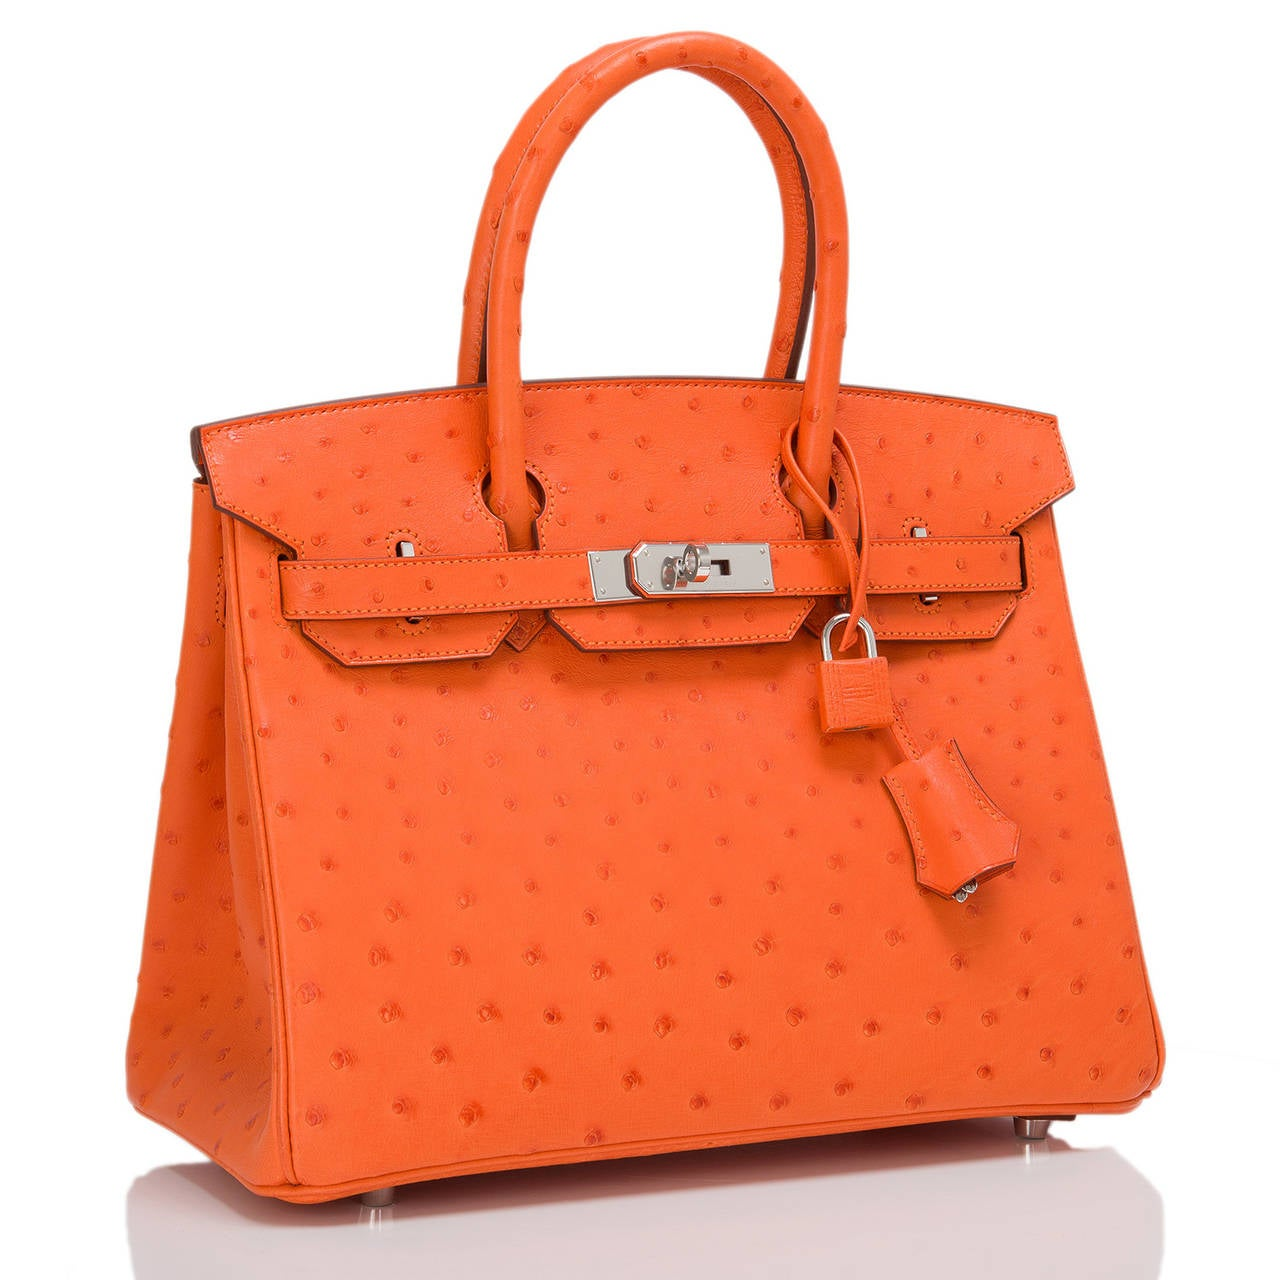 Hermes Tangerine 30cm in Ostrich with palladium hardware.  This Birkin features tonal stitching, front toggle closure, clochette with lock and two keys, and double rolled handles. The interior is lined in Tangerine chevre with one zip pocket with